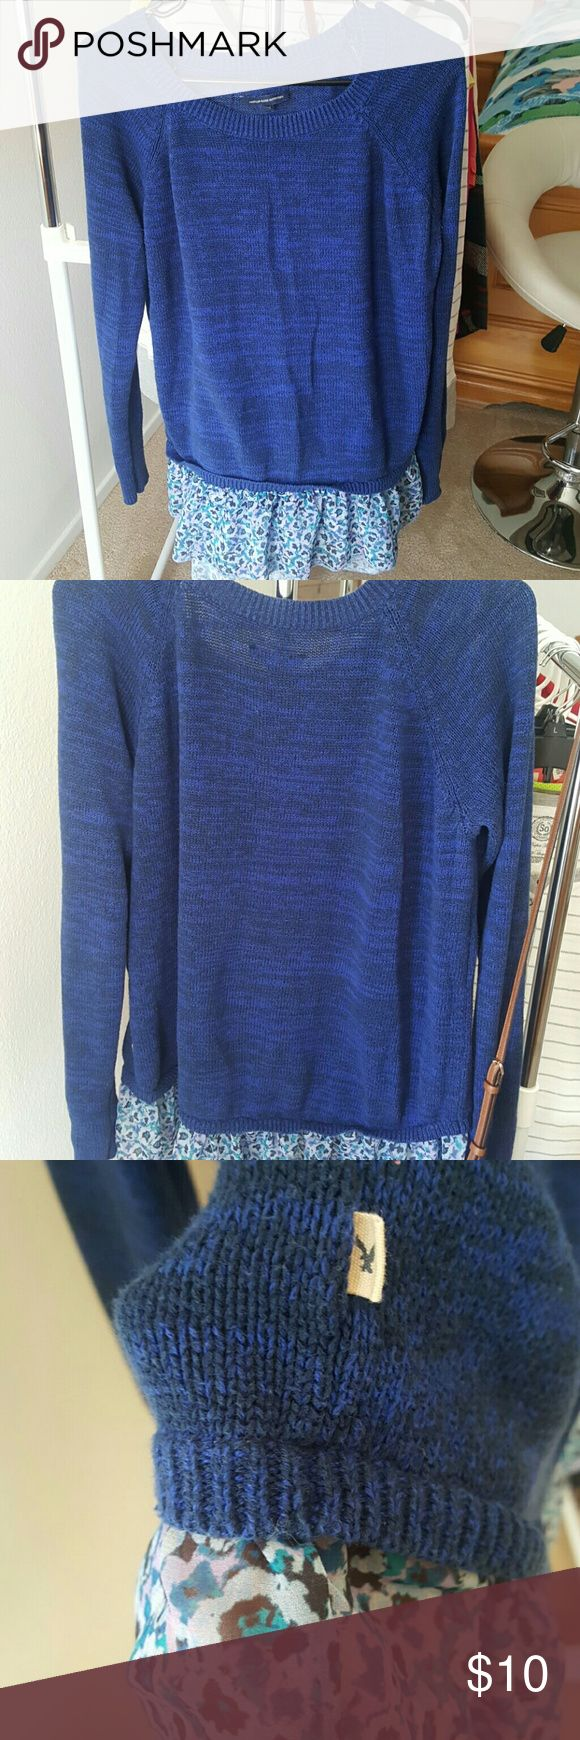 American Eagle Outfitters Top Long sleeve knitten/woven shirt. Blue & black with ruffle detailing on bottom. Looks very cute with leggings & some combat boots! Very comfortable soft & warm. Has been gently worn & is in great condition! American Eagle Outfitters Tops Tunics